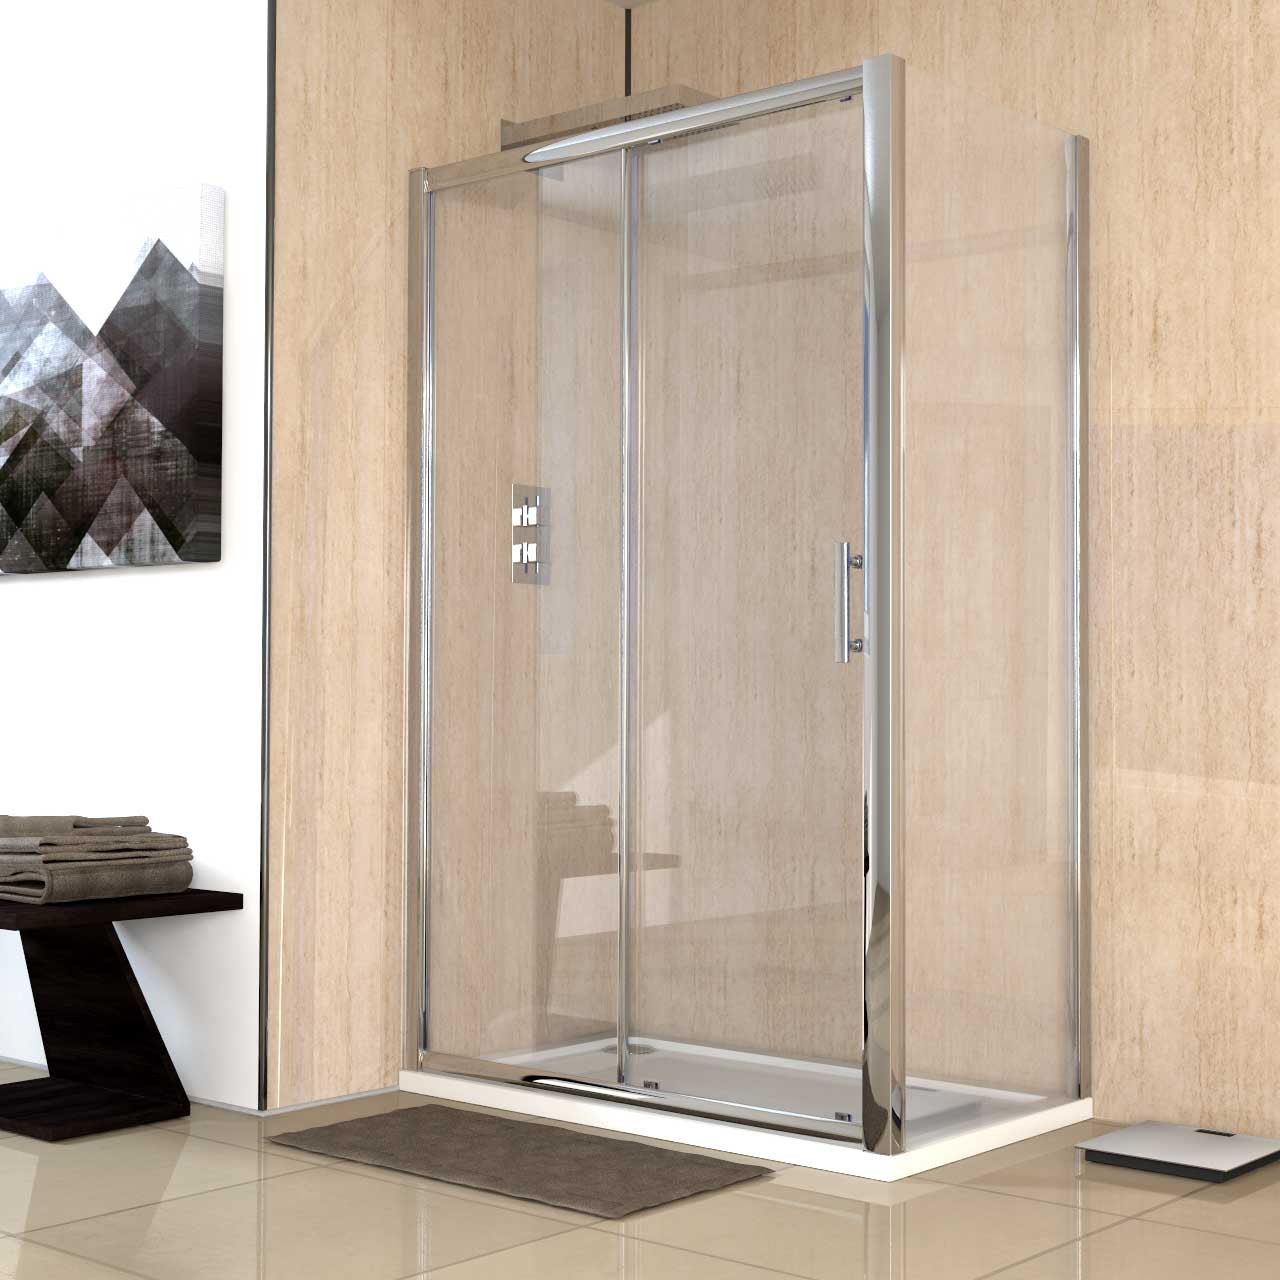 Series 8 1200 x 700 Sliding Door Enclosure